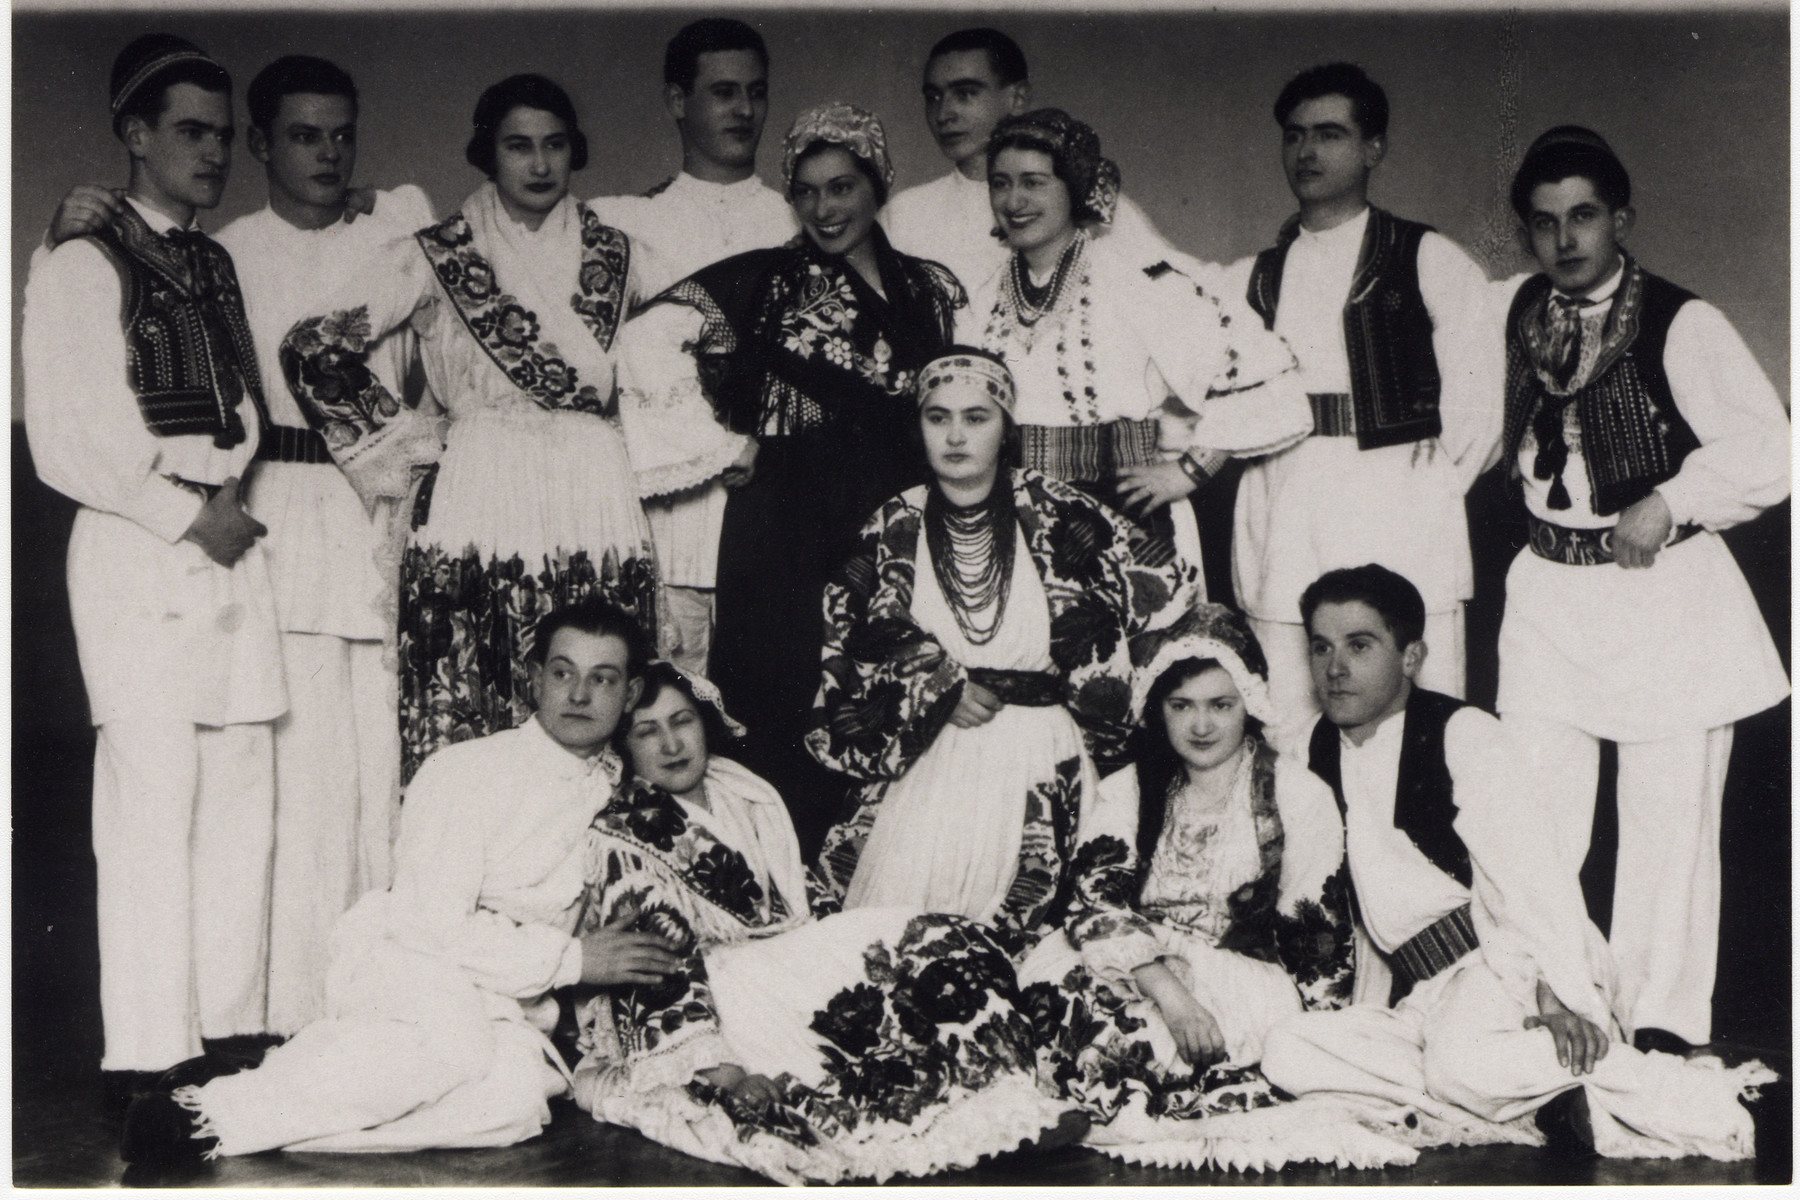 The Yugoslav team at the Maccabi games in Palestine poses in traditional folk costumes.  Andor Willer, a member of the fencing team, stands on the far right.